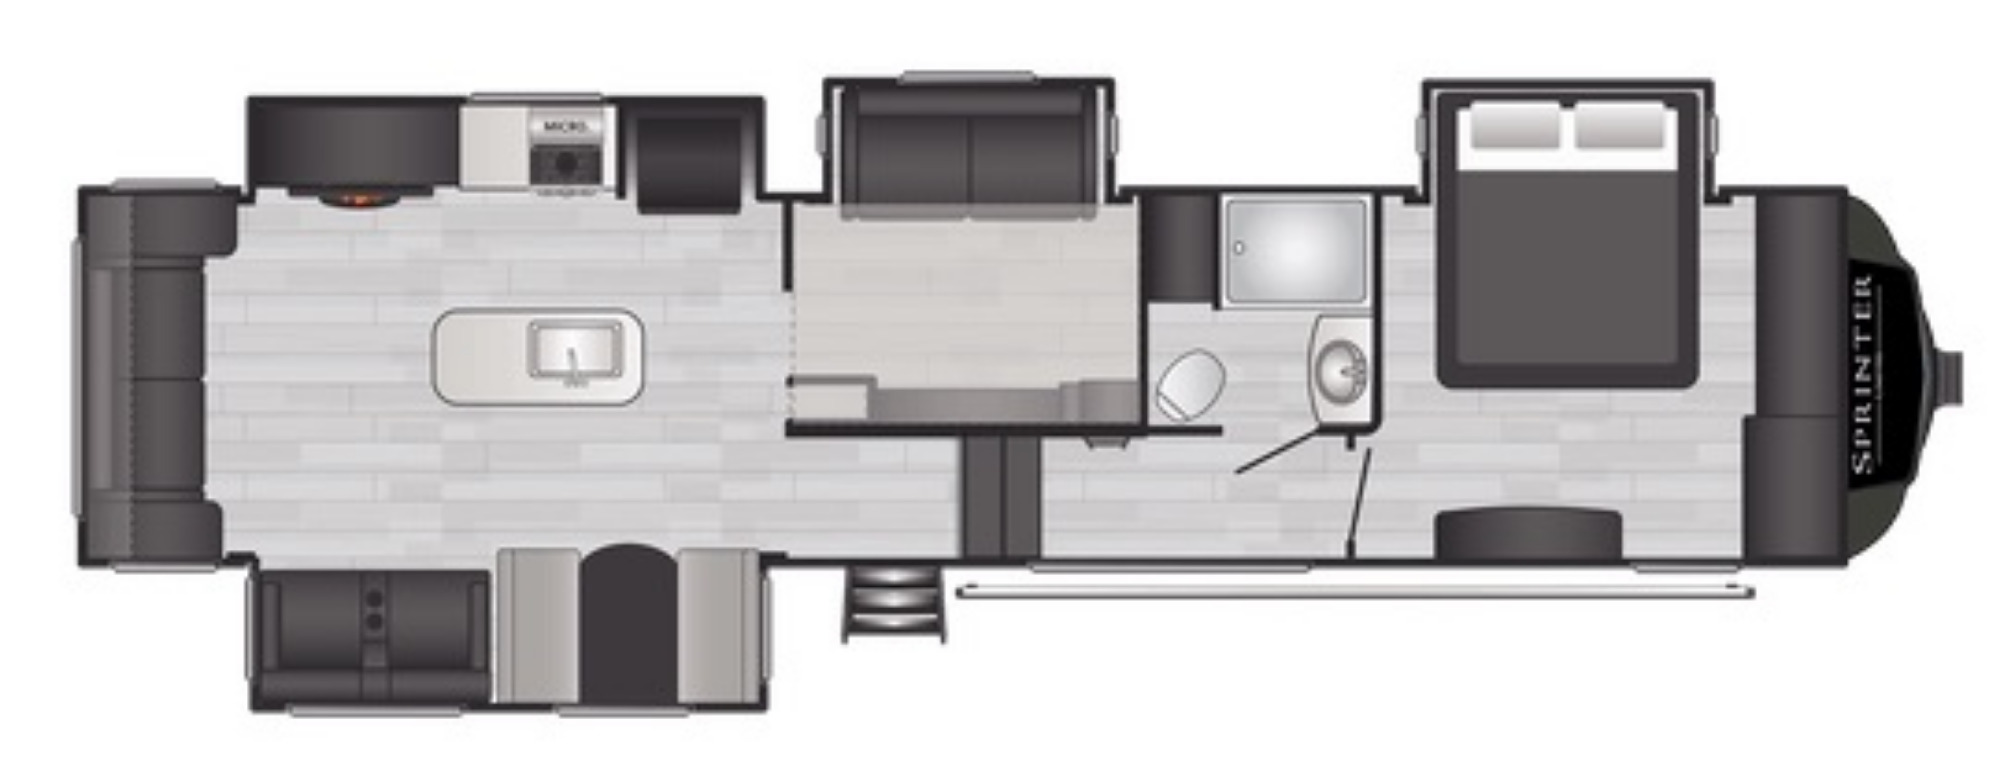 View Floor Plan for 2021 KEYSTONE SPRINTER LIMITED 3590LFT